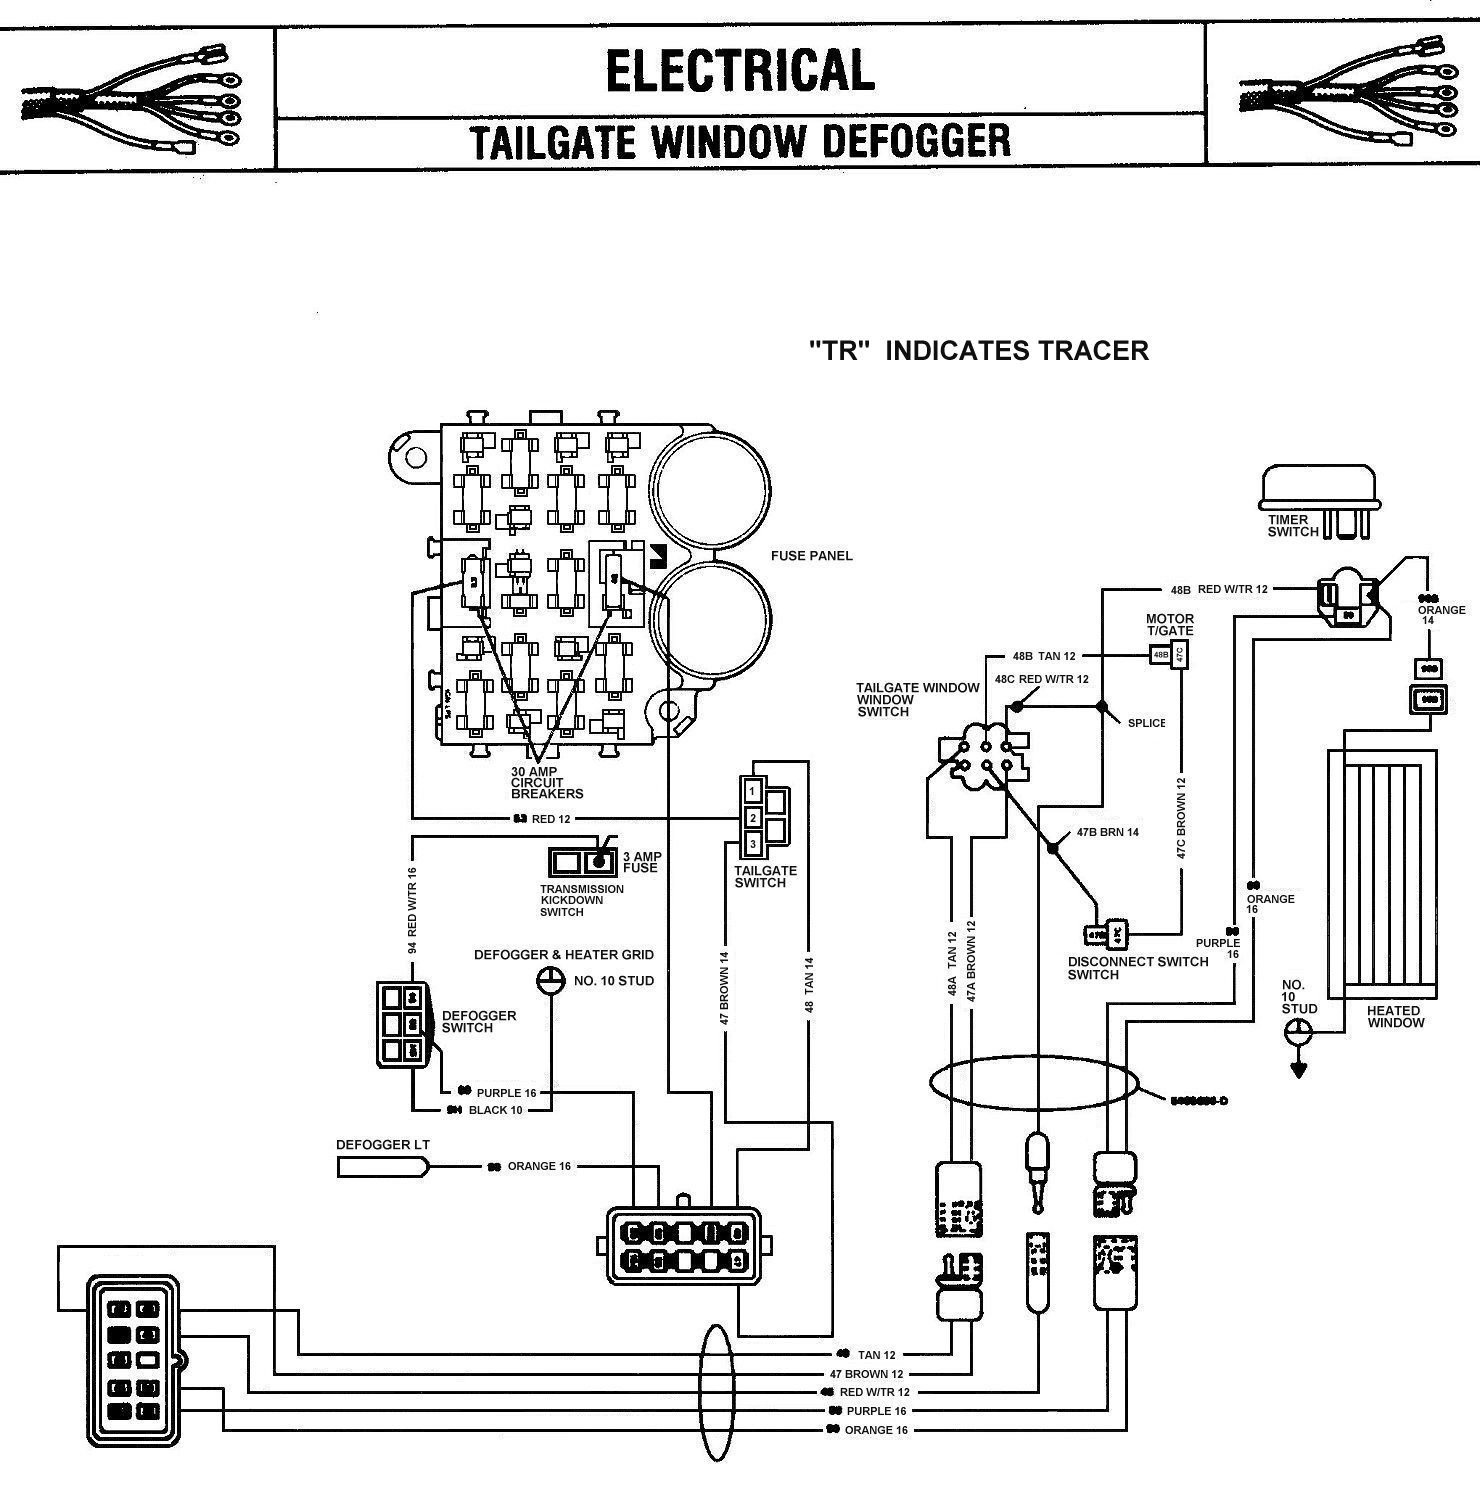 Tom Oljeep Collins Fsj Wiring Page 69 C10 Guage Amp Diagram 1984 1986 Rear Window Defroster